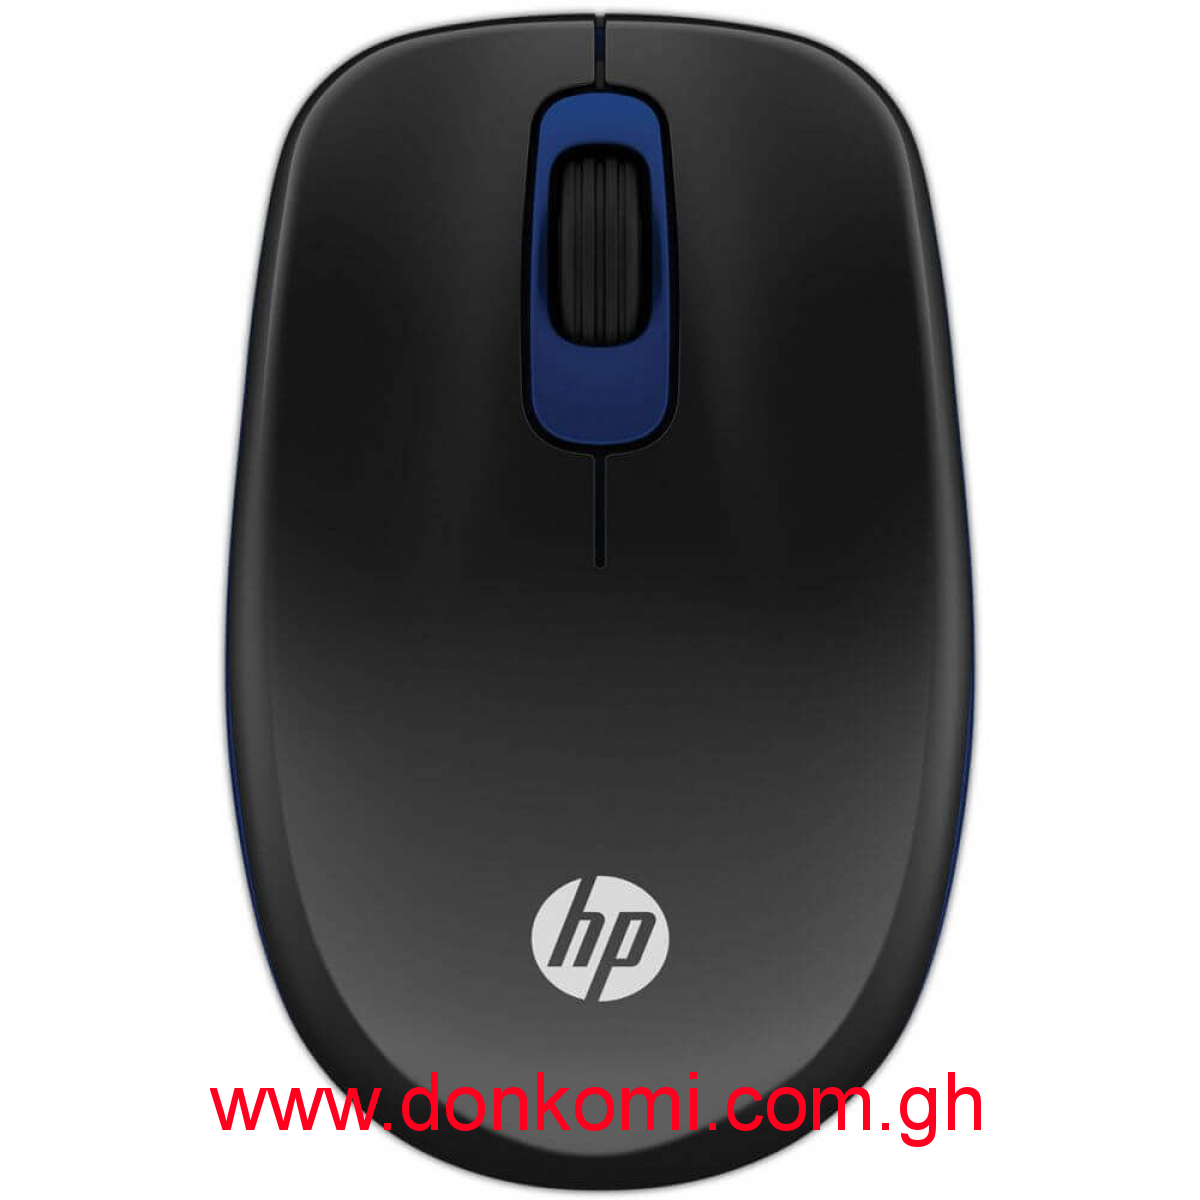 HP OPTICAL WIRELESS MOUSE Z3600